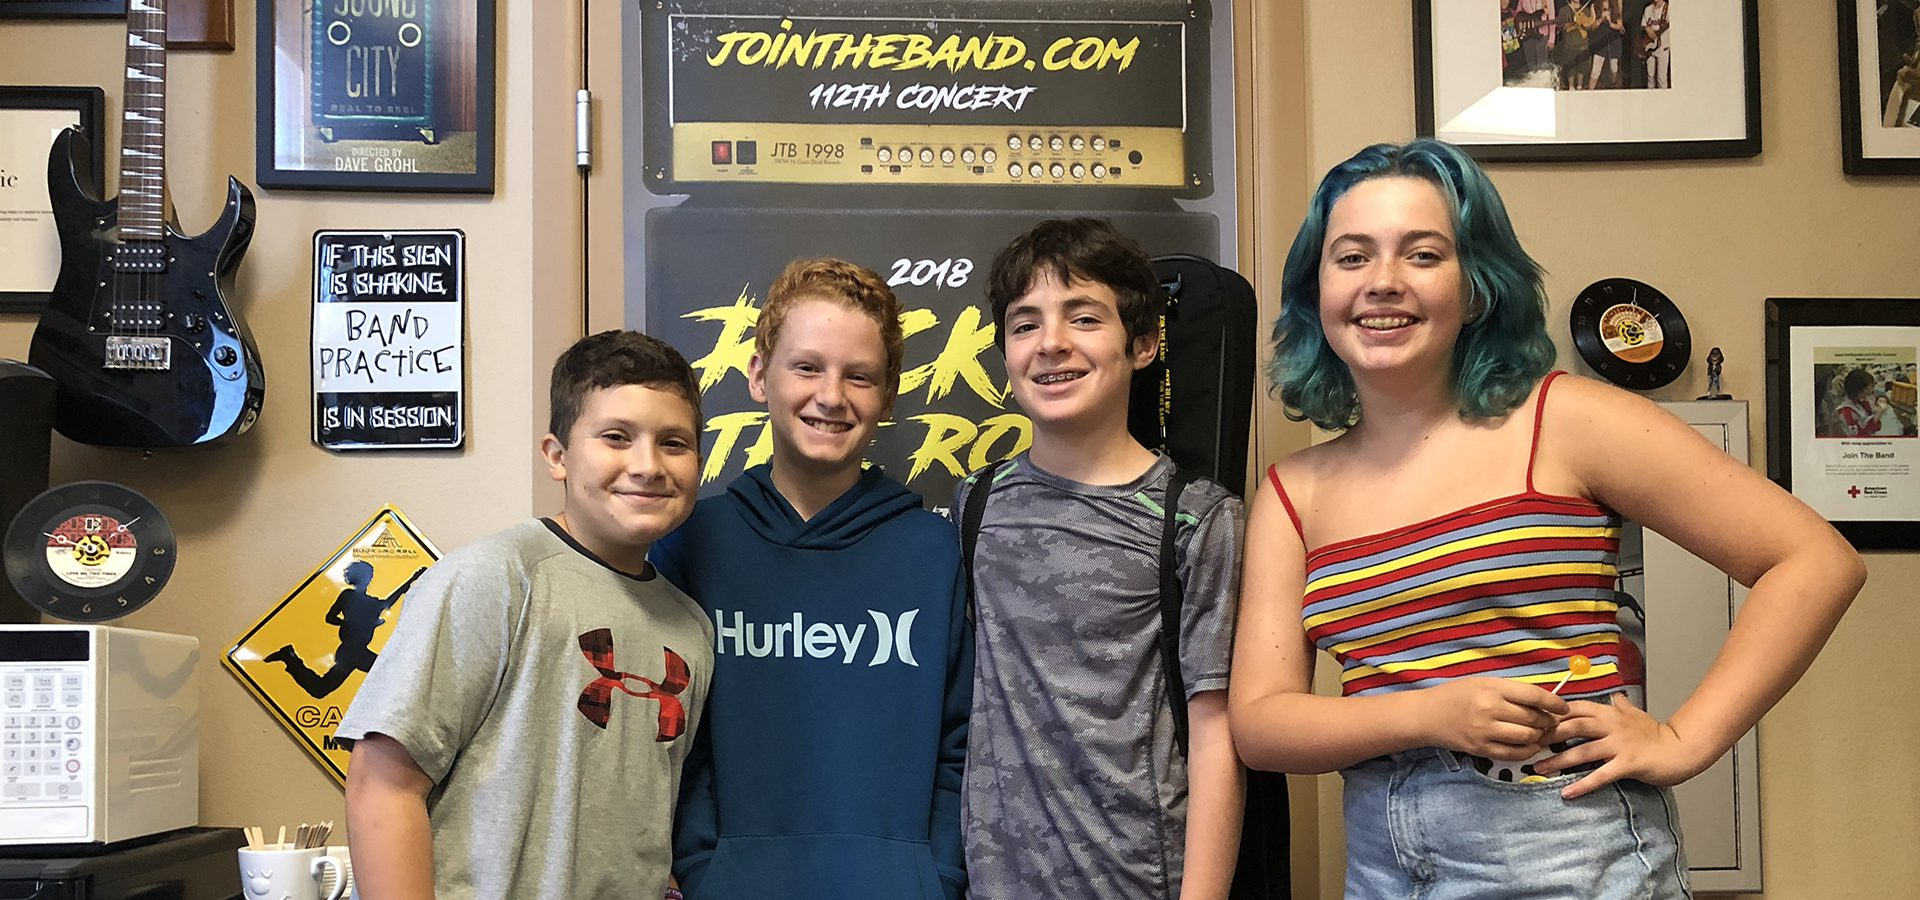 Rock Band Music Camp - Kids Band - Sherman Oaks, Los Angeles - Join The Band